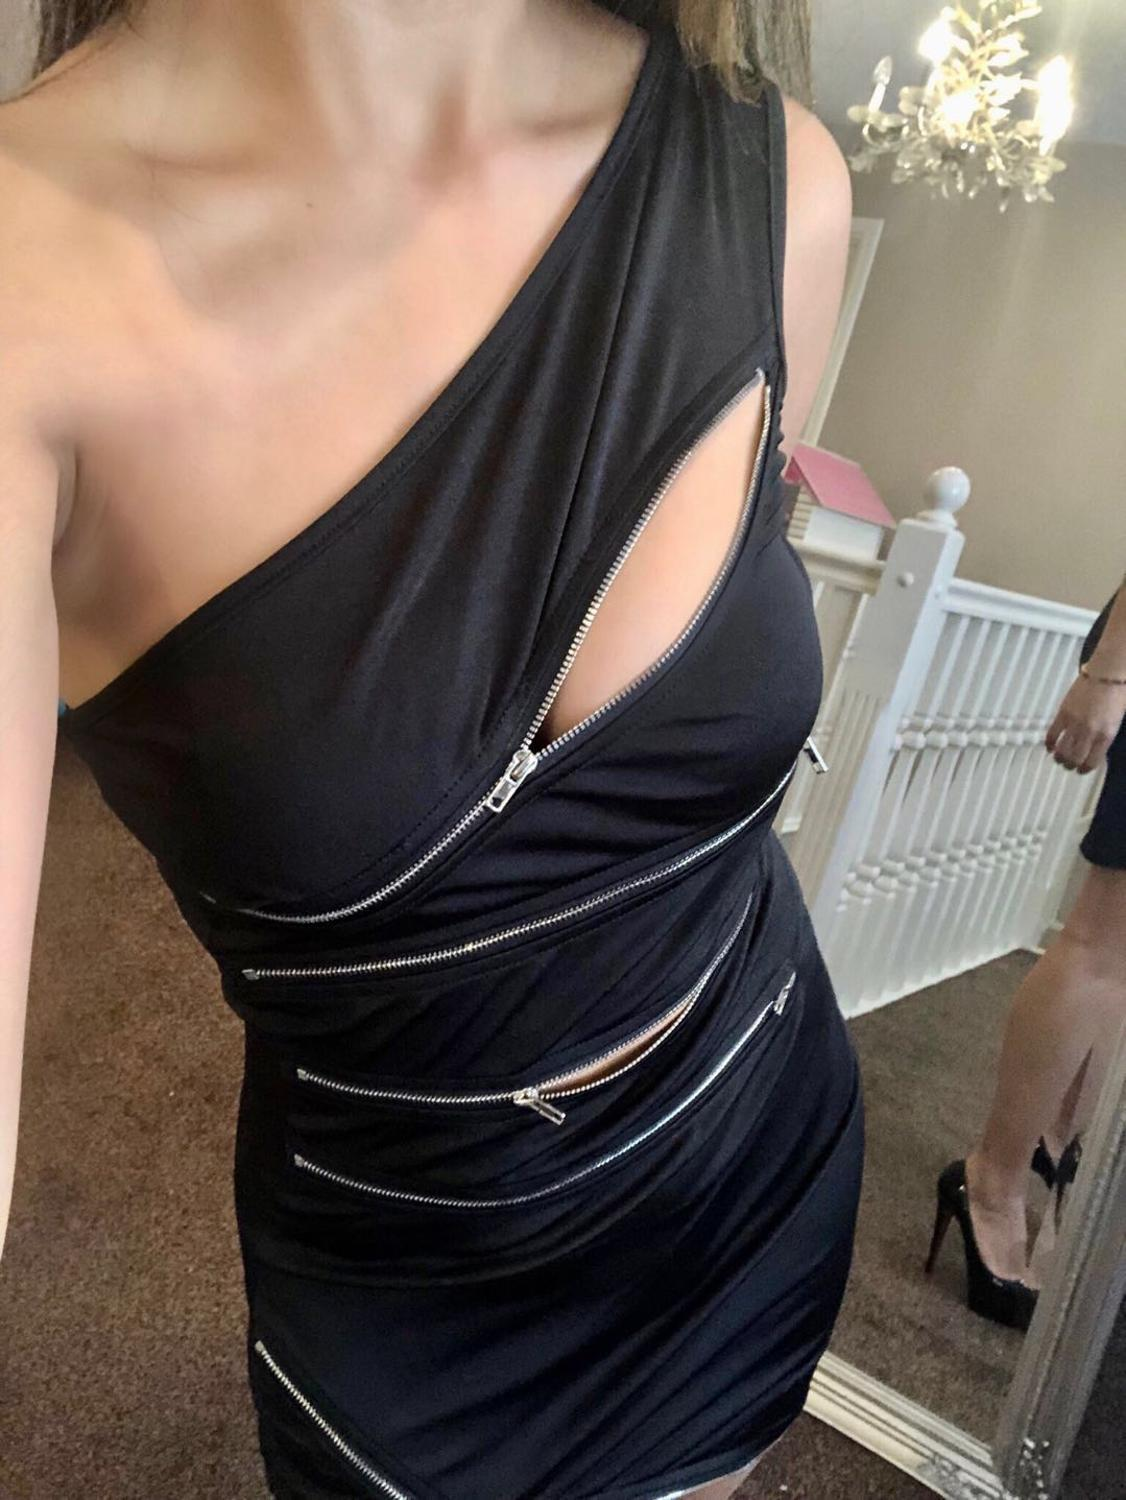 Sexy one shoulder zipper splice Hole Summer Dress women fashion black Night club party clothes bodycon Dresses elegan vestidos in Dresses from Women 39 s Clothing